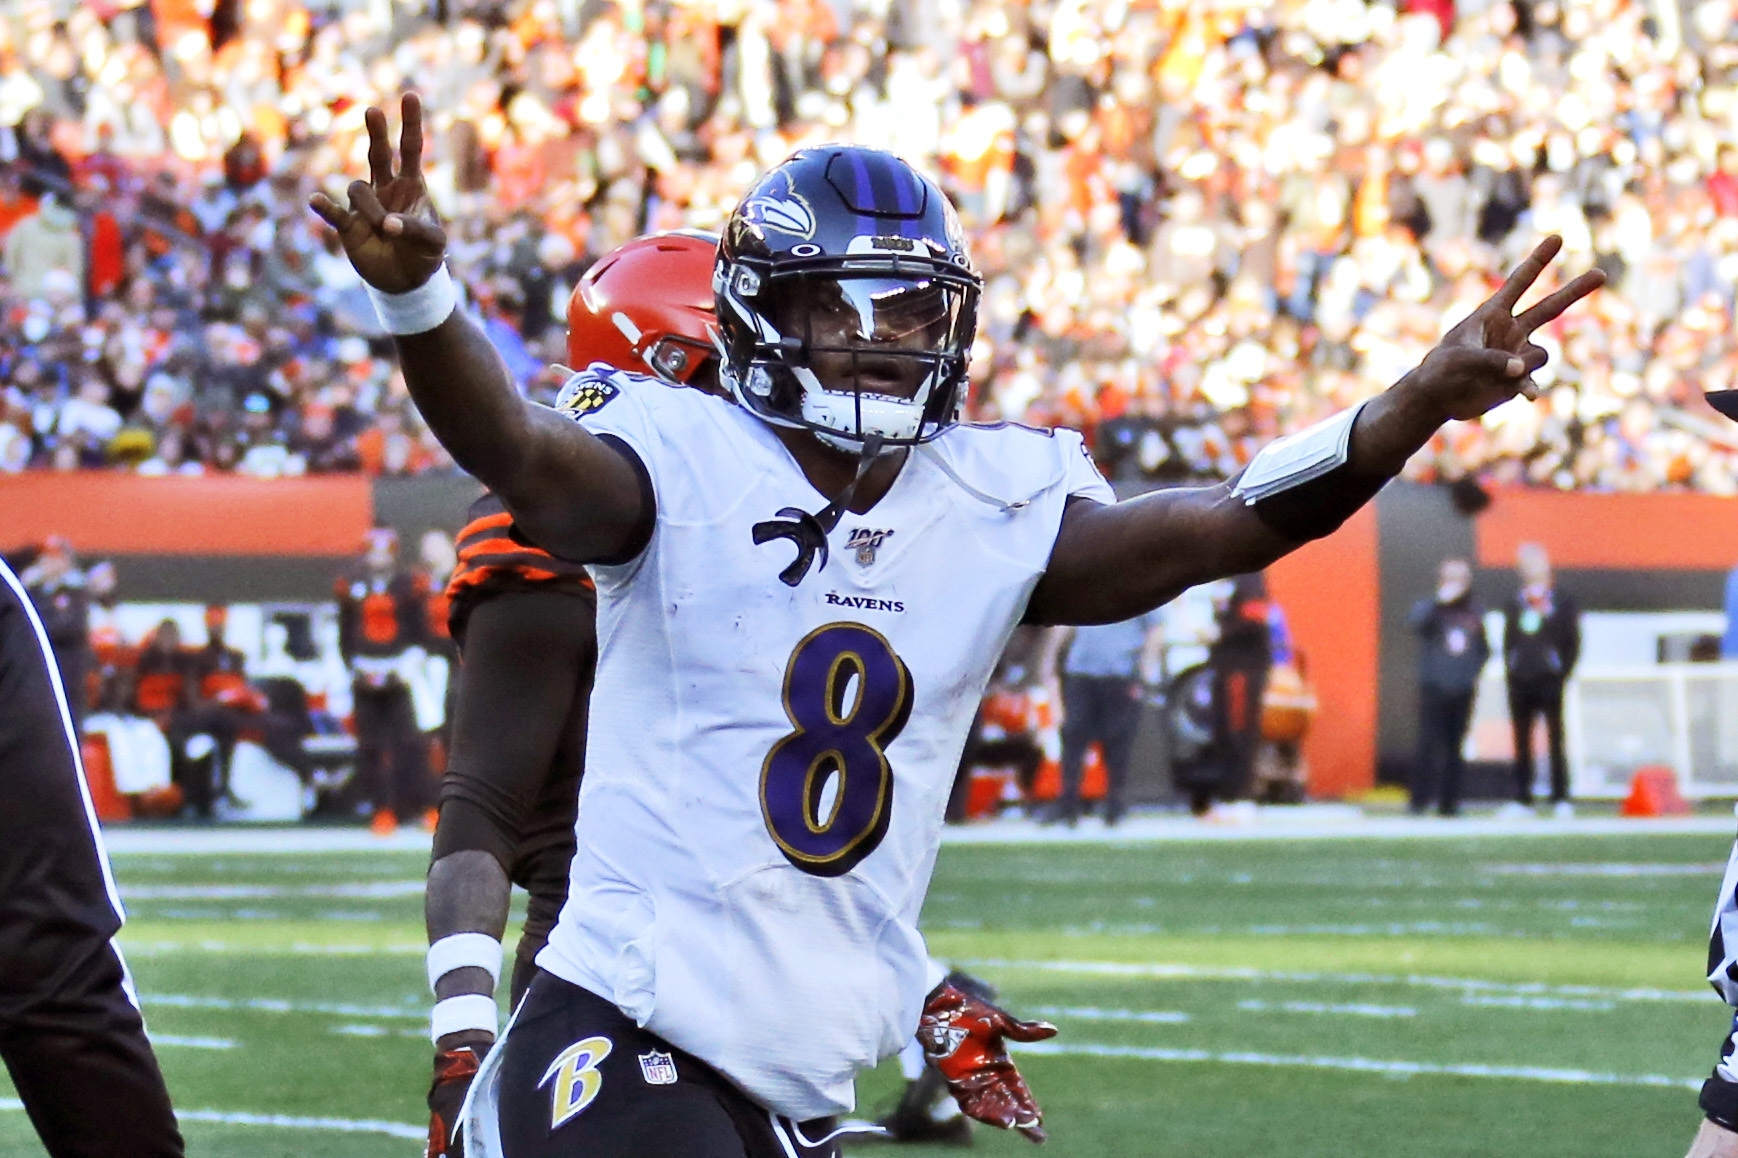 <p><strong>Can Lamar Jackson pay off his MVP season with a title?</strong></p> <p>Lamar Jackson's winning the NFL MVP. And with the New England Patriots giving themselves a torturous road through the AFC playoffs, the Baltimore Ravens are sitting pretty with both the first round bye and homefield advantage throughout the playoffs to get back to the Super Bowl. They'll likely have to get past either the Pats or last year's breakout team, the Kansas City Chiefs, to get there. But with a year as wide open as we've seen in a while, a title could set Jackson and the Ravens atop the heap as not only the best team in the game this season, but for years to come.</p>